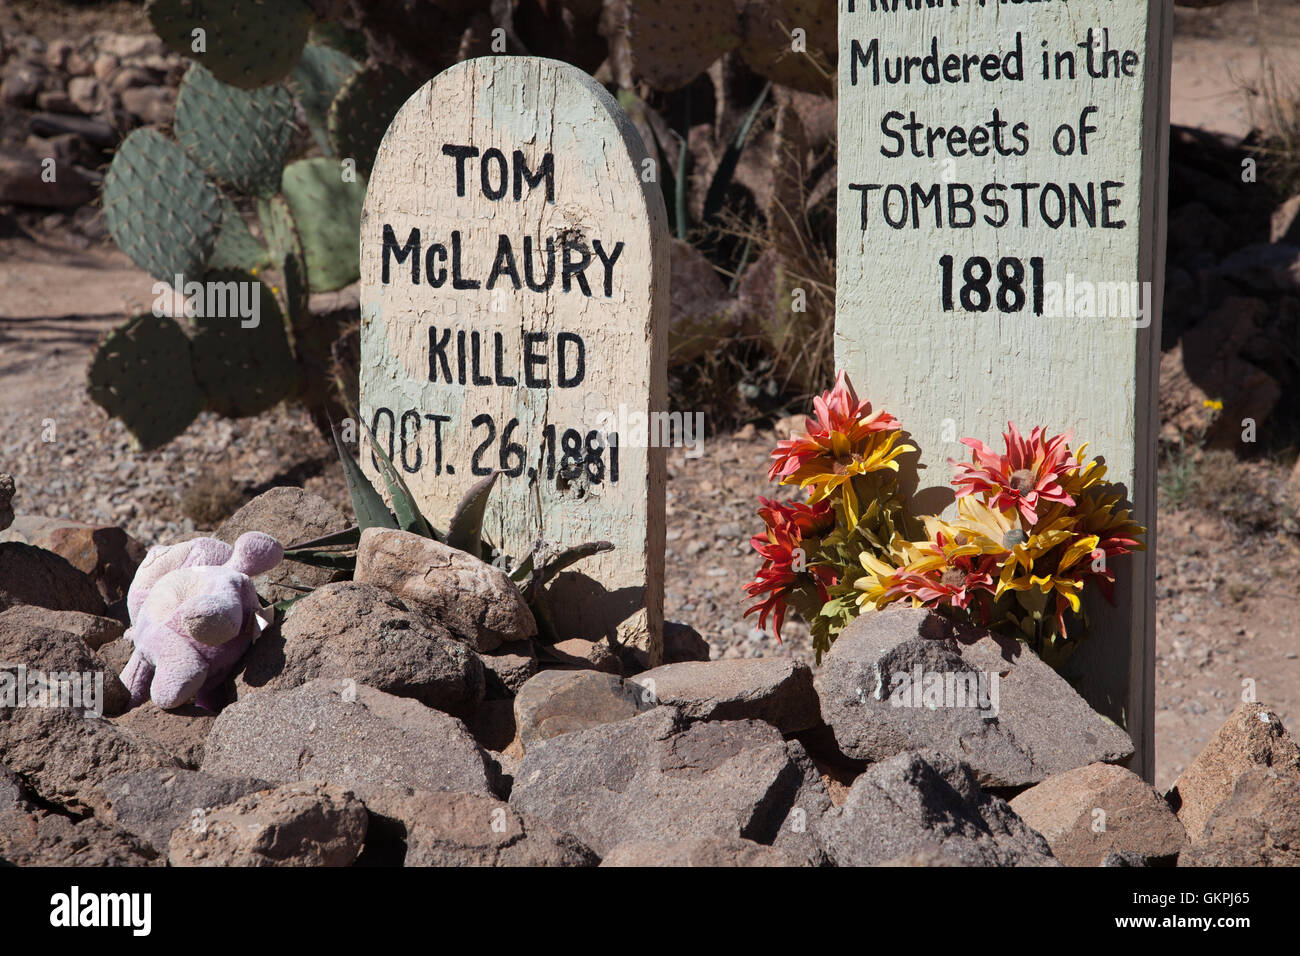 The grave markers of Tom McLaury and Billy Clayton murdered on the streets of in 1881. - Stock Image